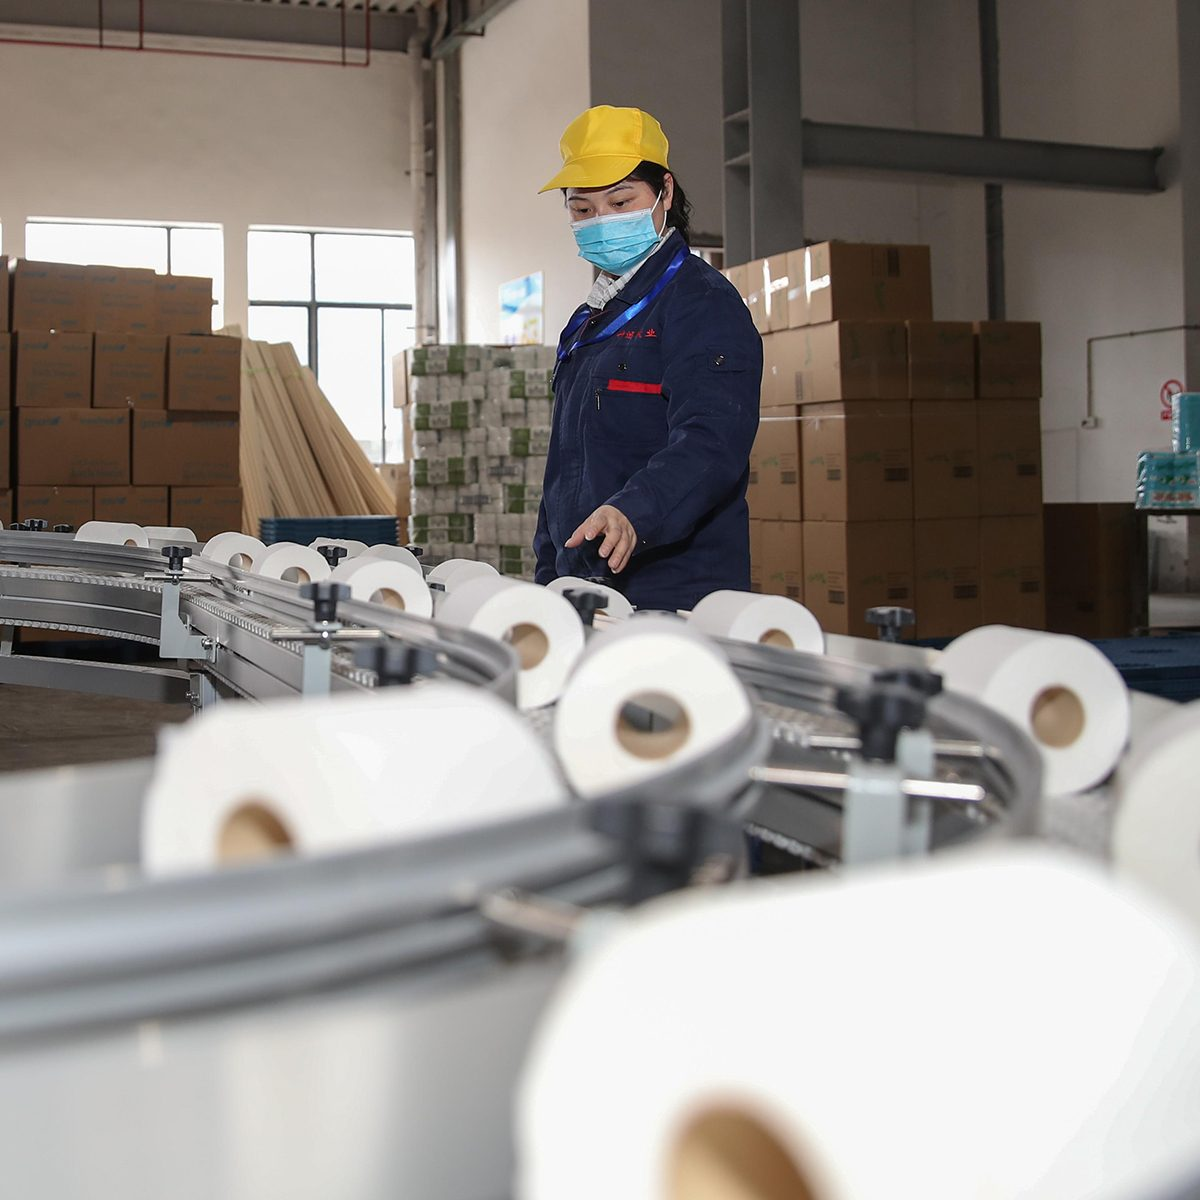 CHISHUI, CHINA - APRIL 24: An employee produces toilet paper for exporting on the production line of a paper company on April 24, 2020 in Chishui, Guizhou Province of China. (Photo by Qu Honglun/China News Service via Getty Images)